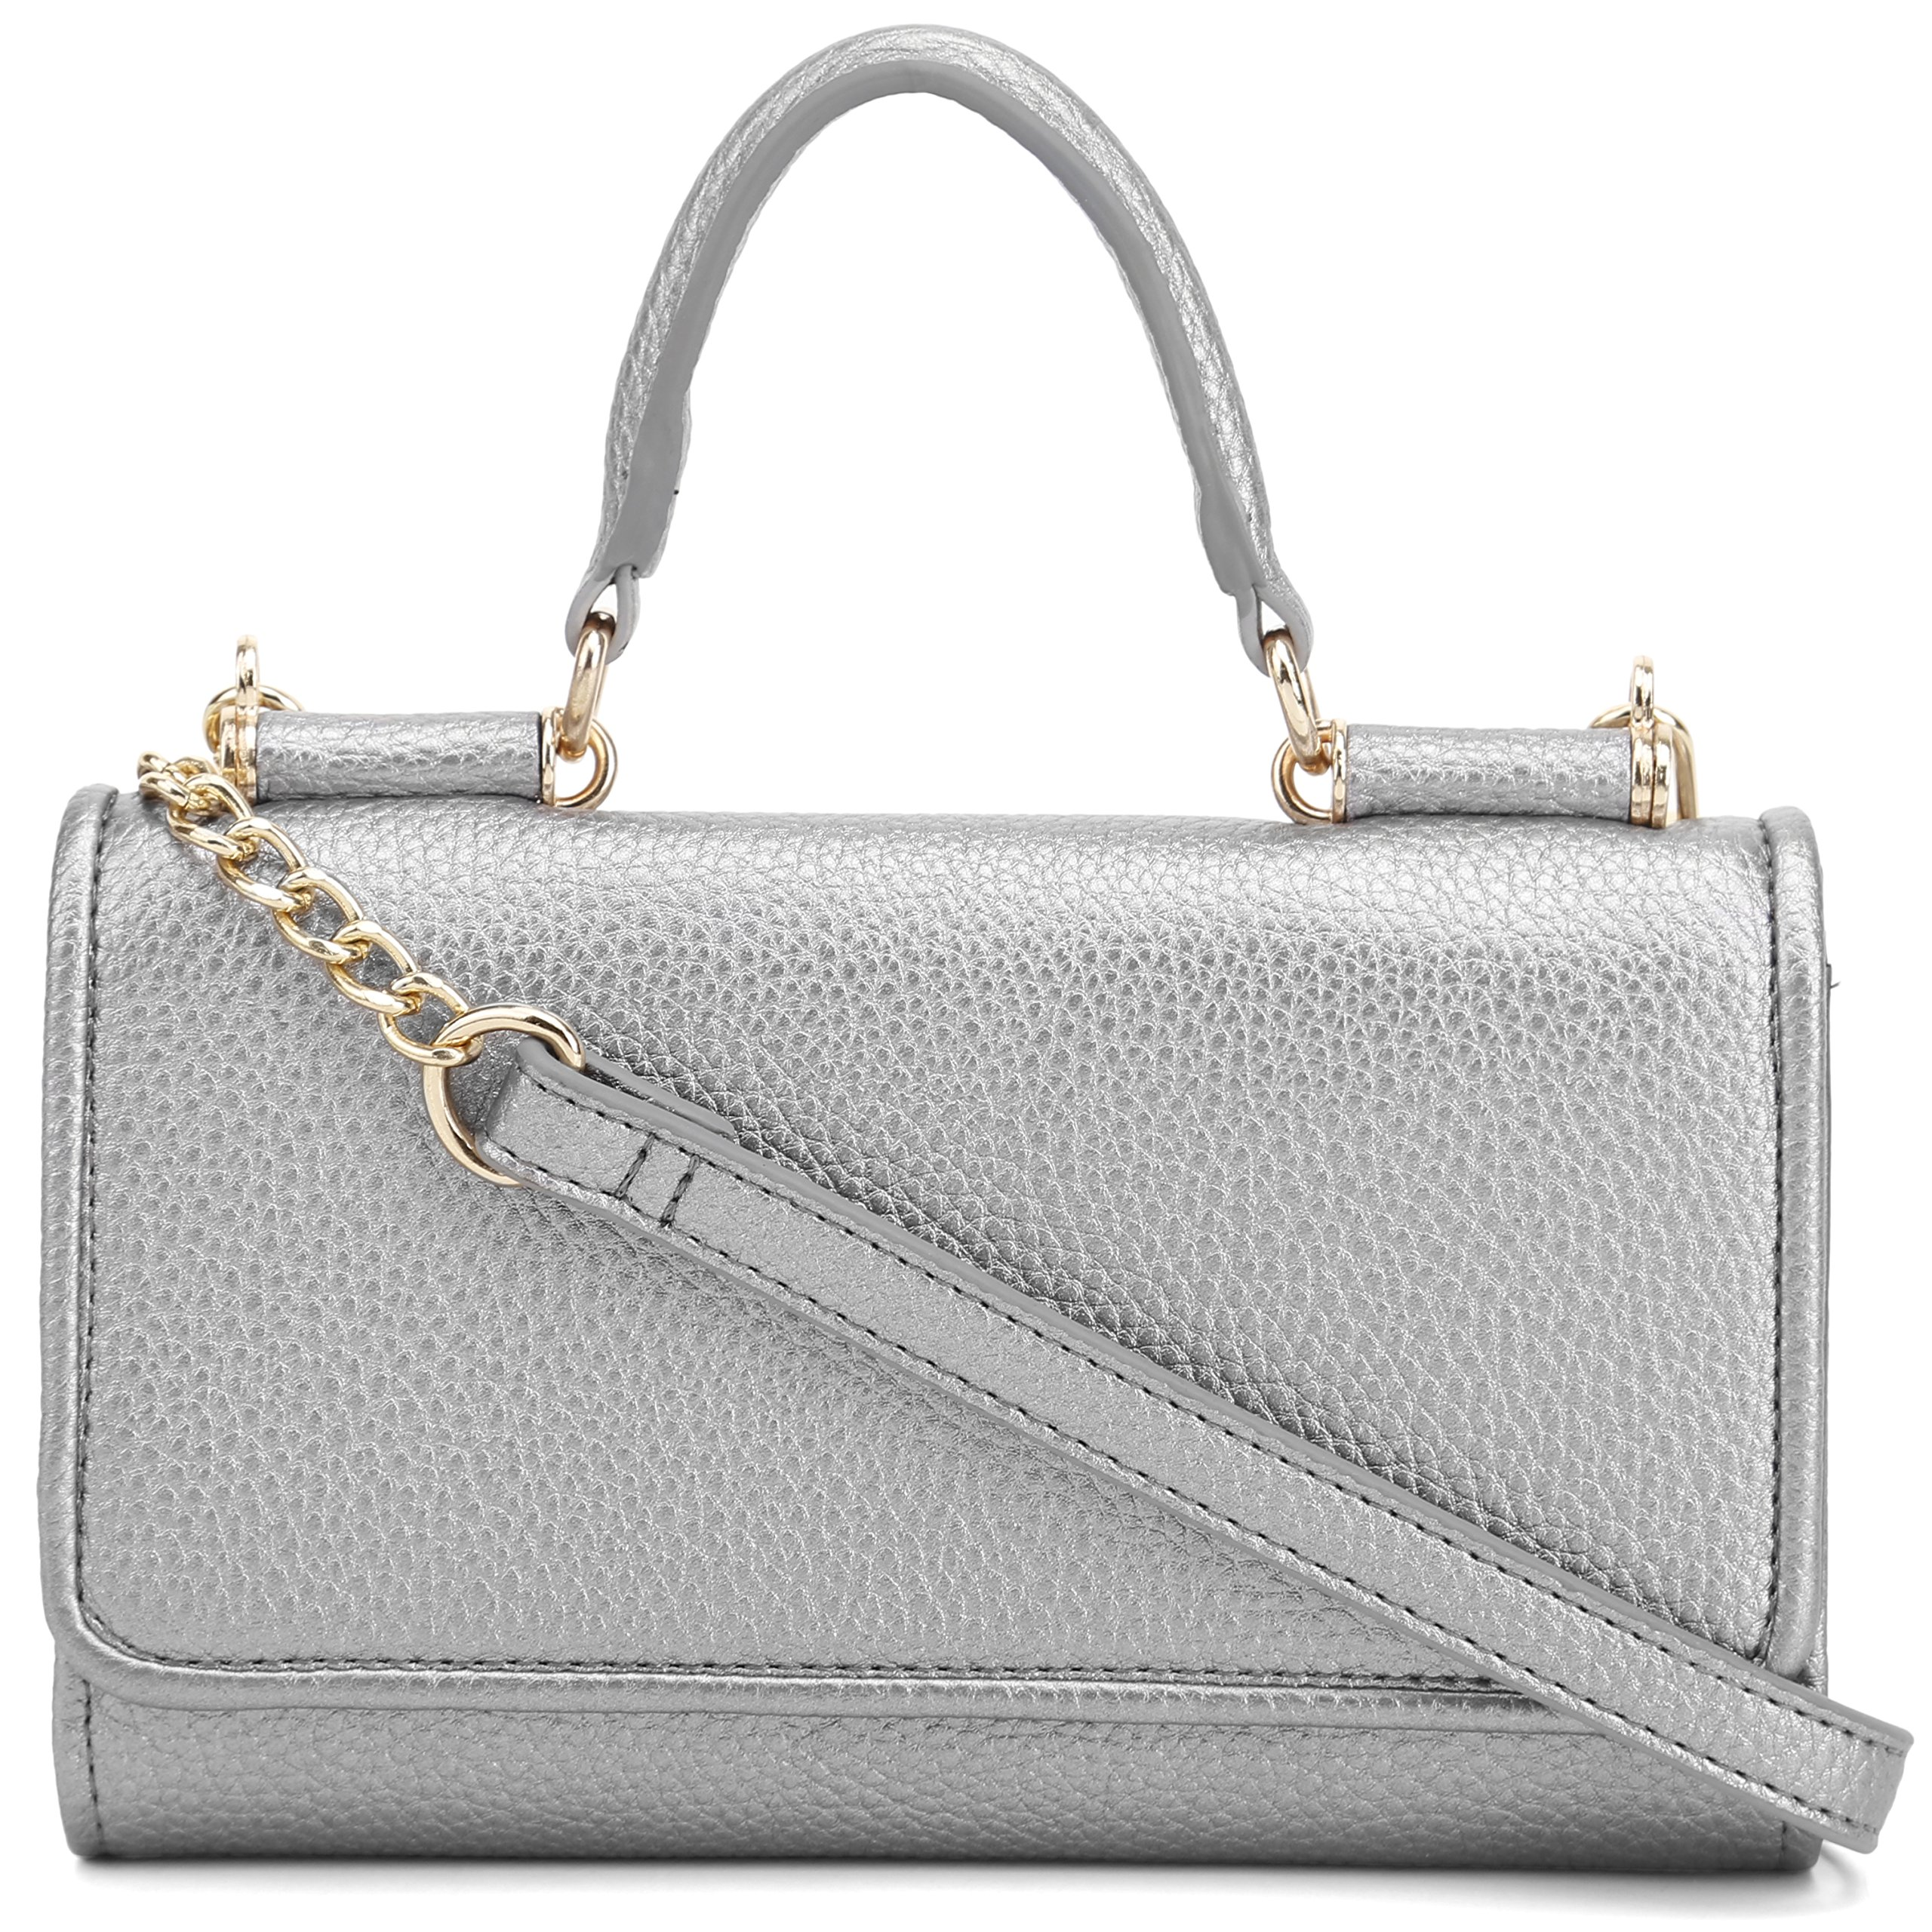 DELUXITY Top Handle Clutch Crossbody Purse with Removable Chain Strap (Platinum)